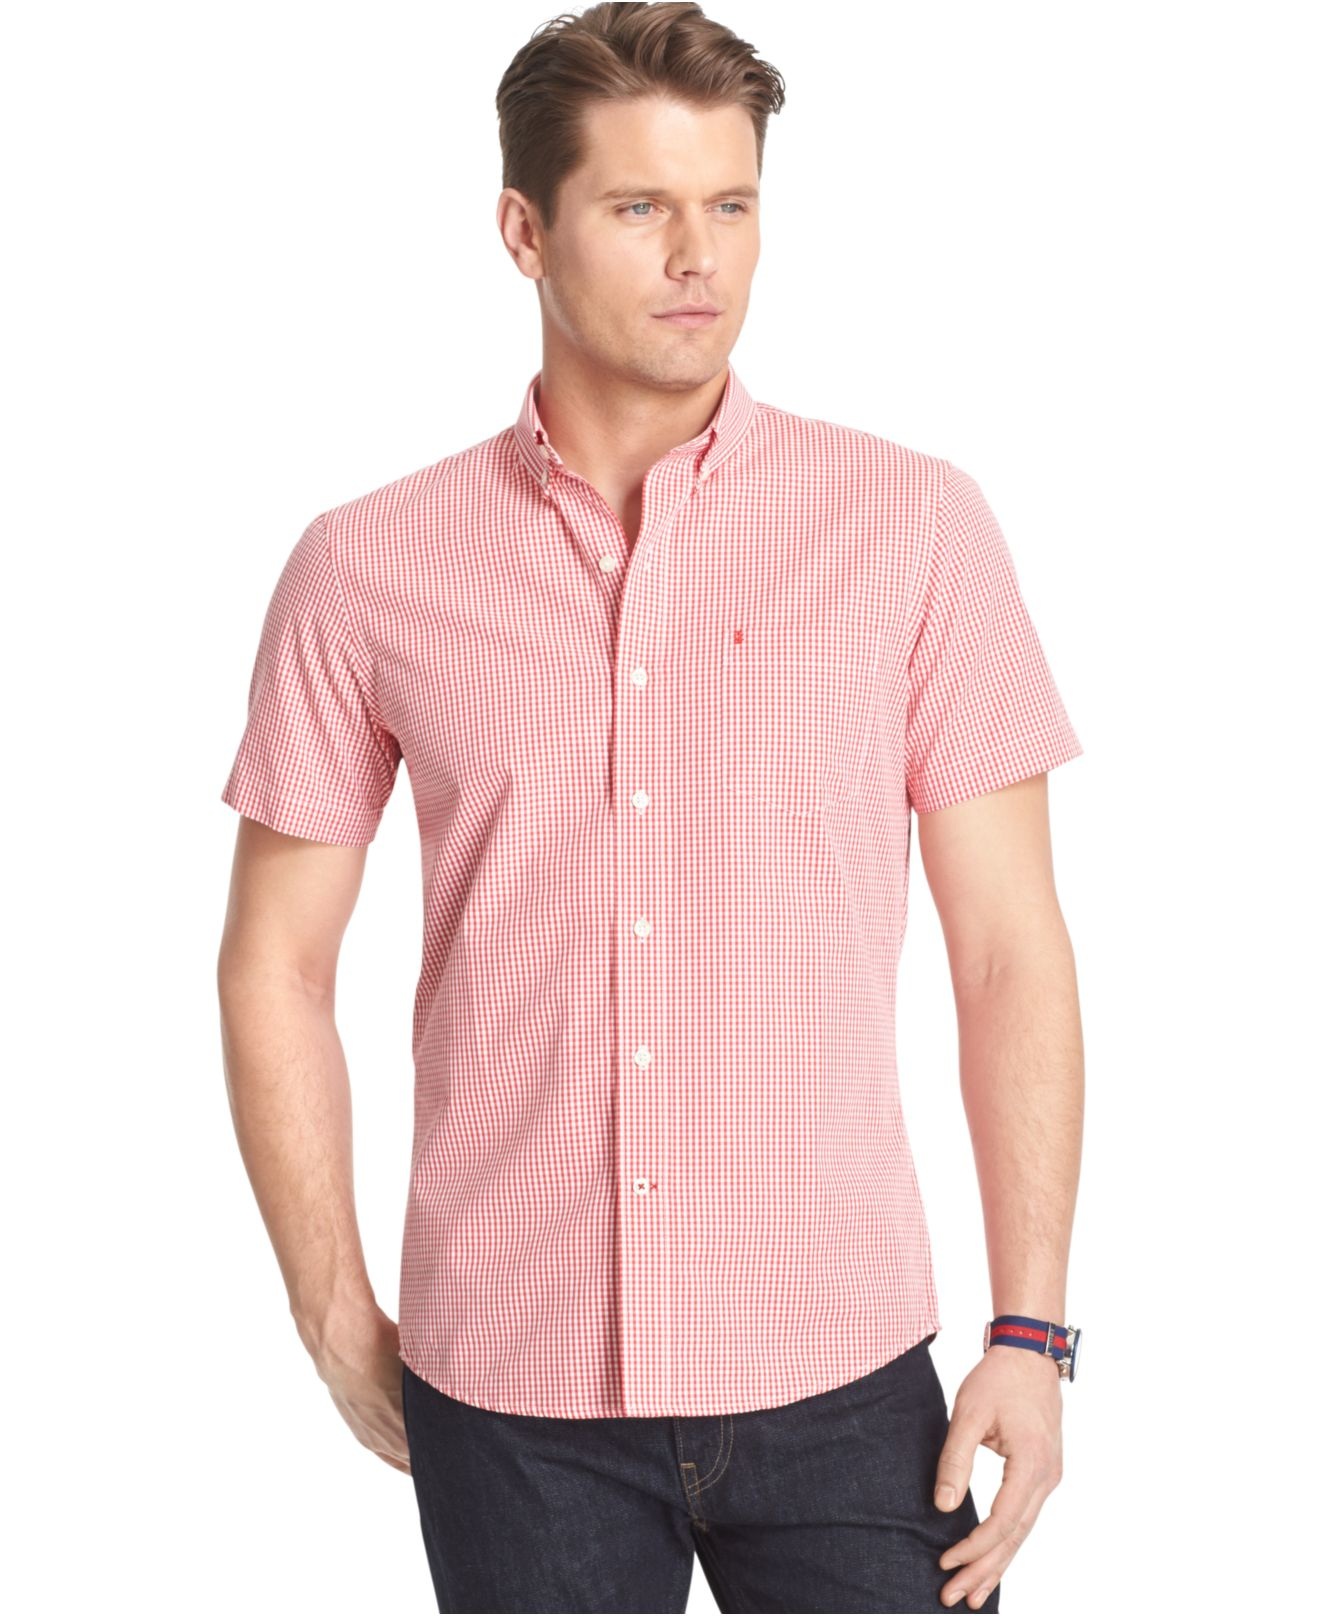 Lyst izod big and tall short sleeve gingham poplin shirt for Izod big and tall shirts